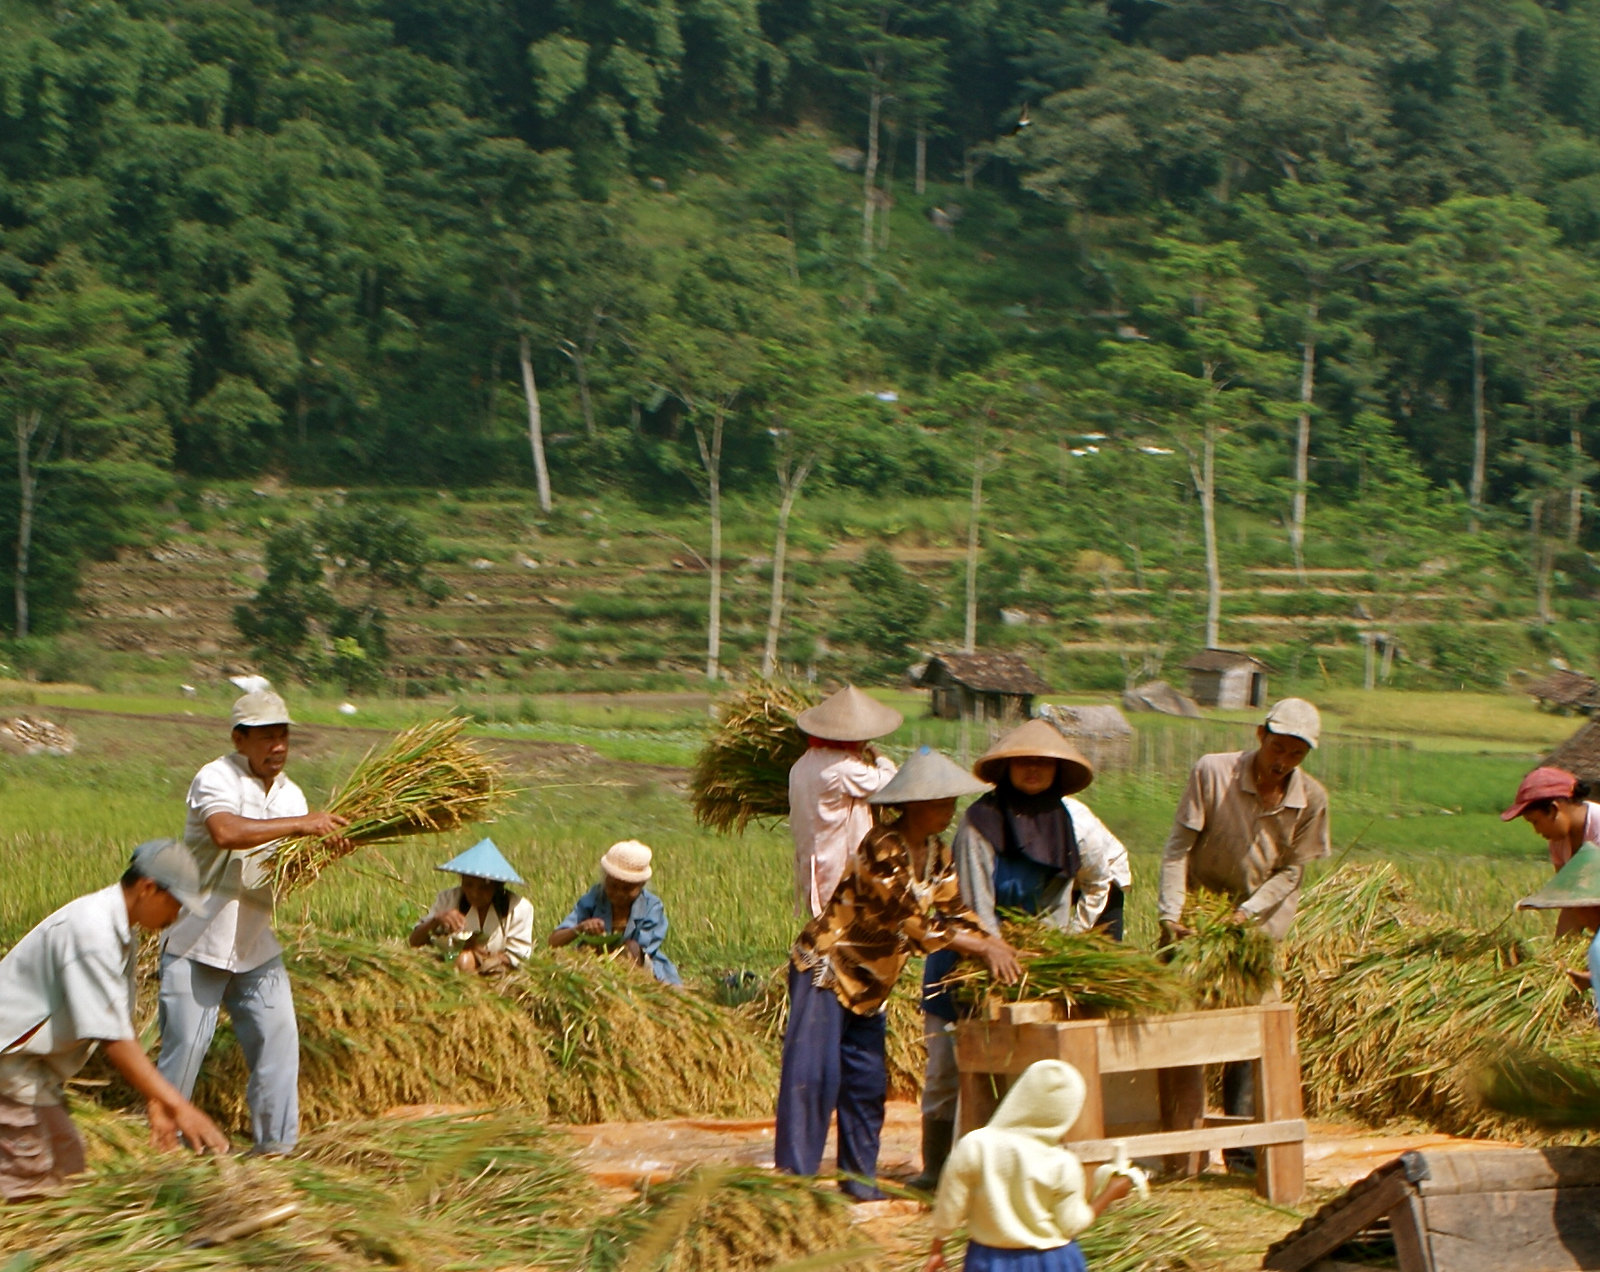 Agricultural workers in Indonesia